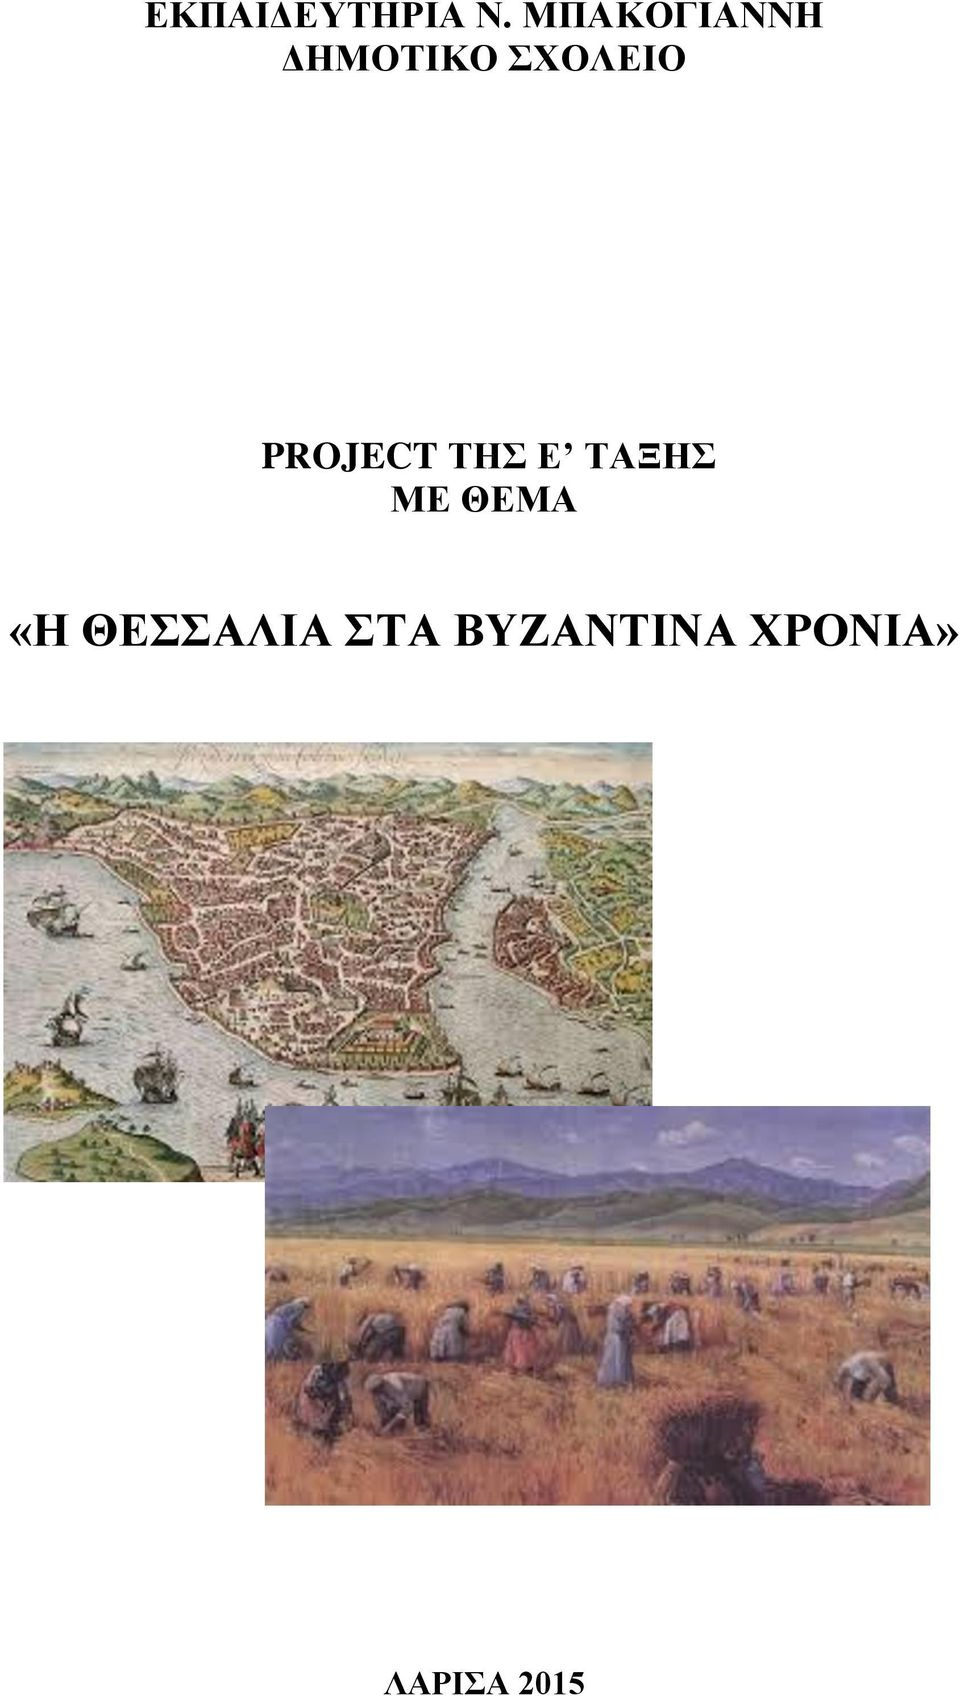 PROJECT ΤΗΣ Ε ΤΑΞΗΣ ΜΕ ΘΕΜΑ